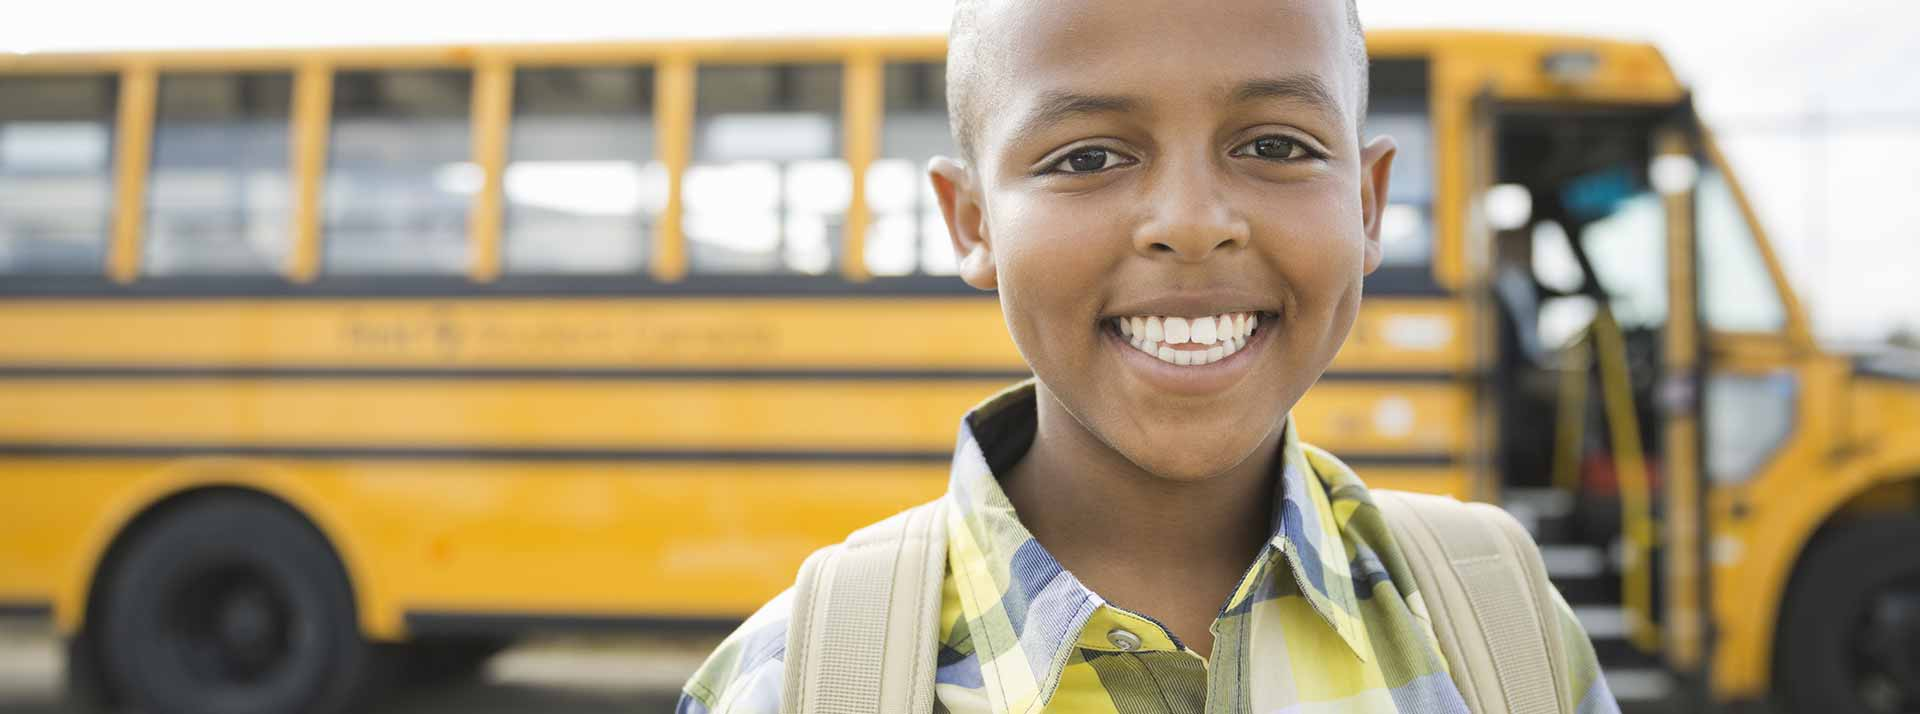 Behavioral health services for children and adolescents